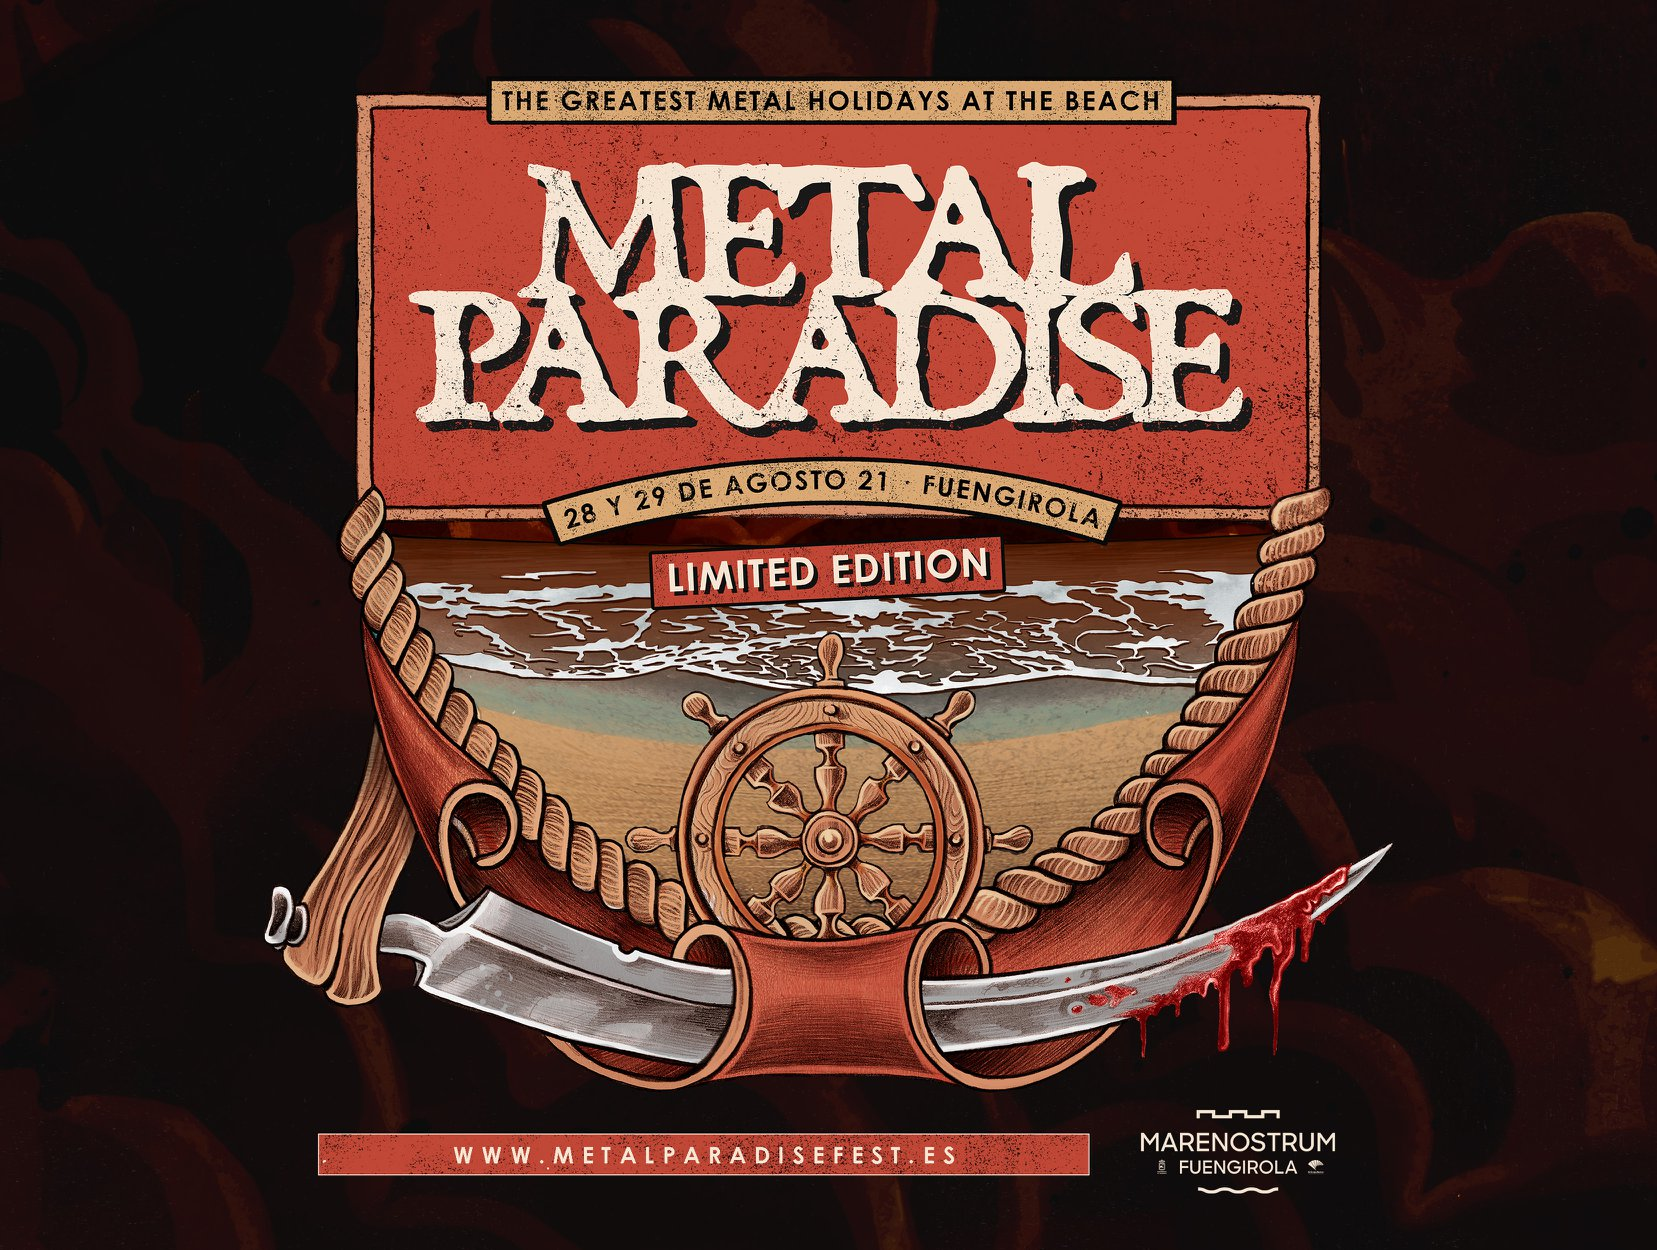 METAL PARADISE LIMITED EDITION – 28 Y 29 DE AGOSTO